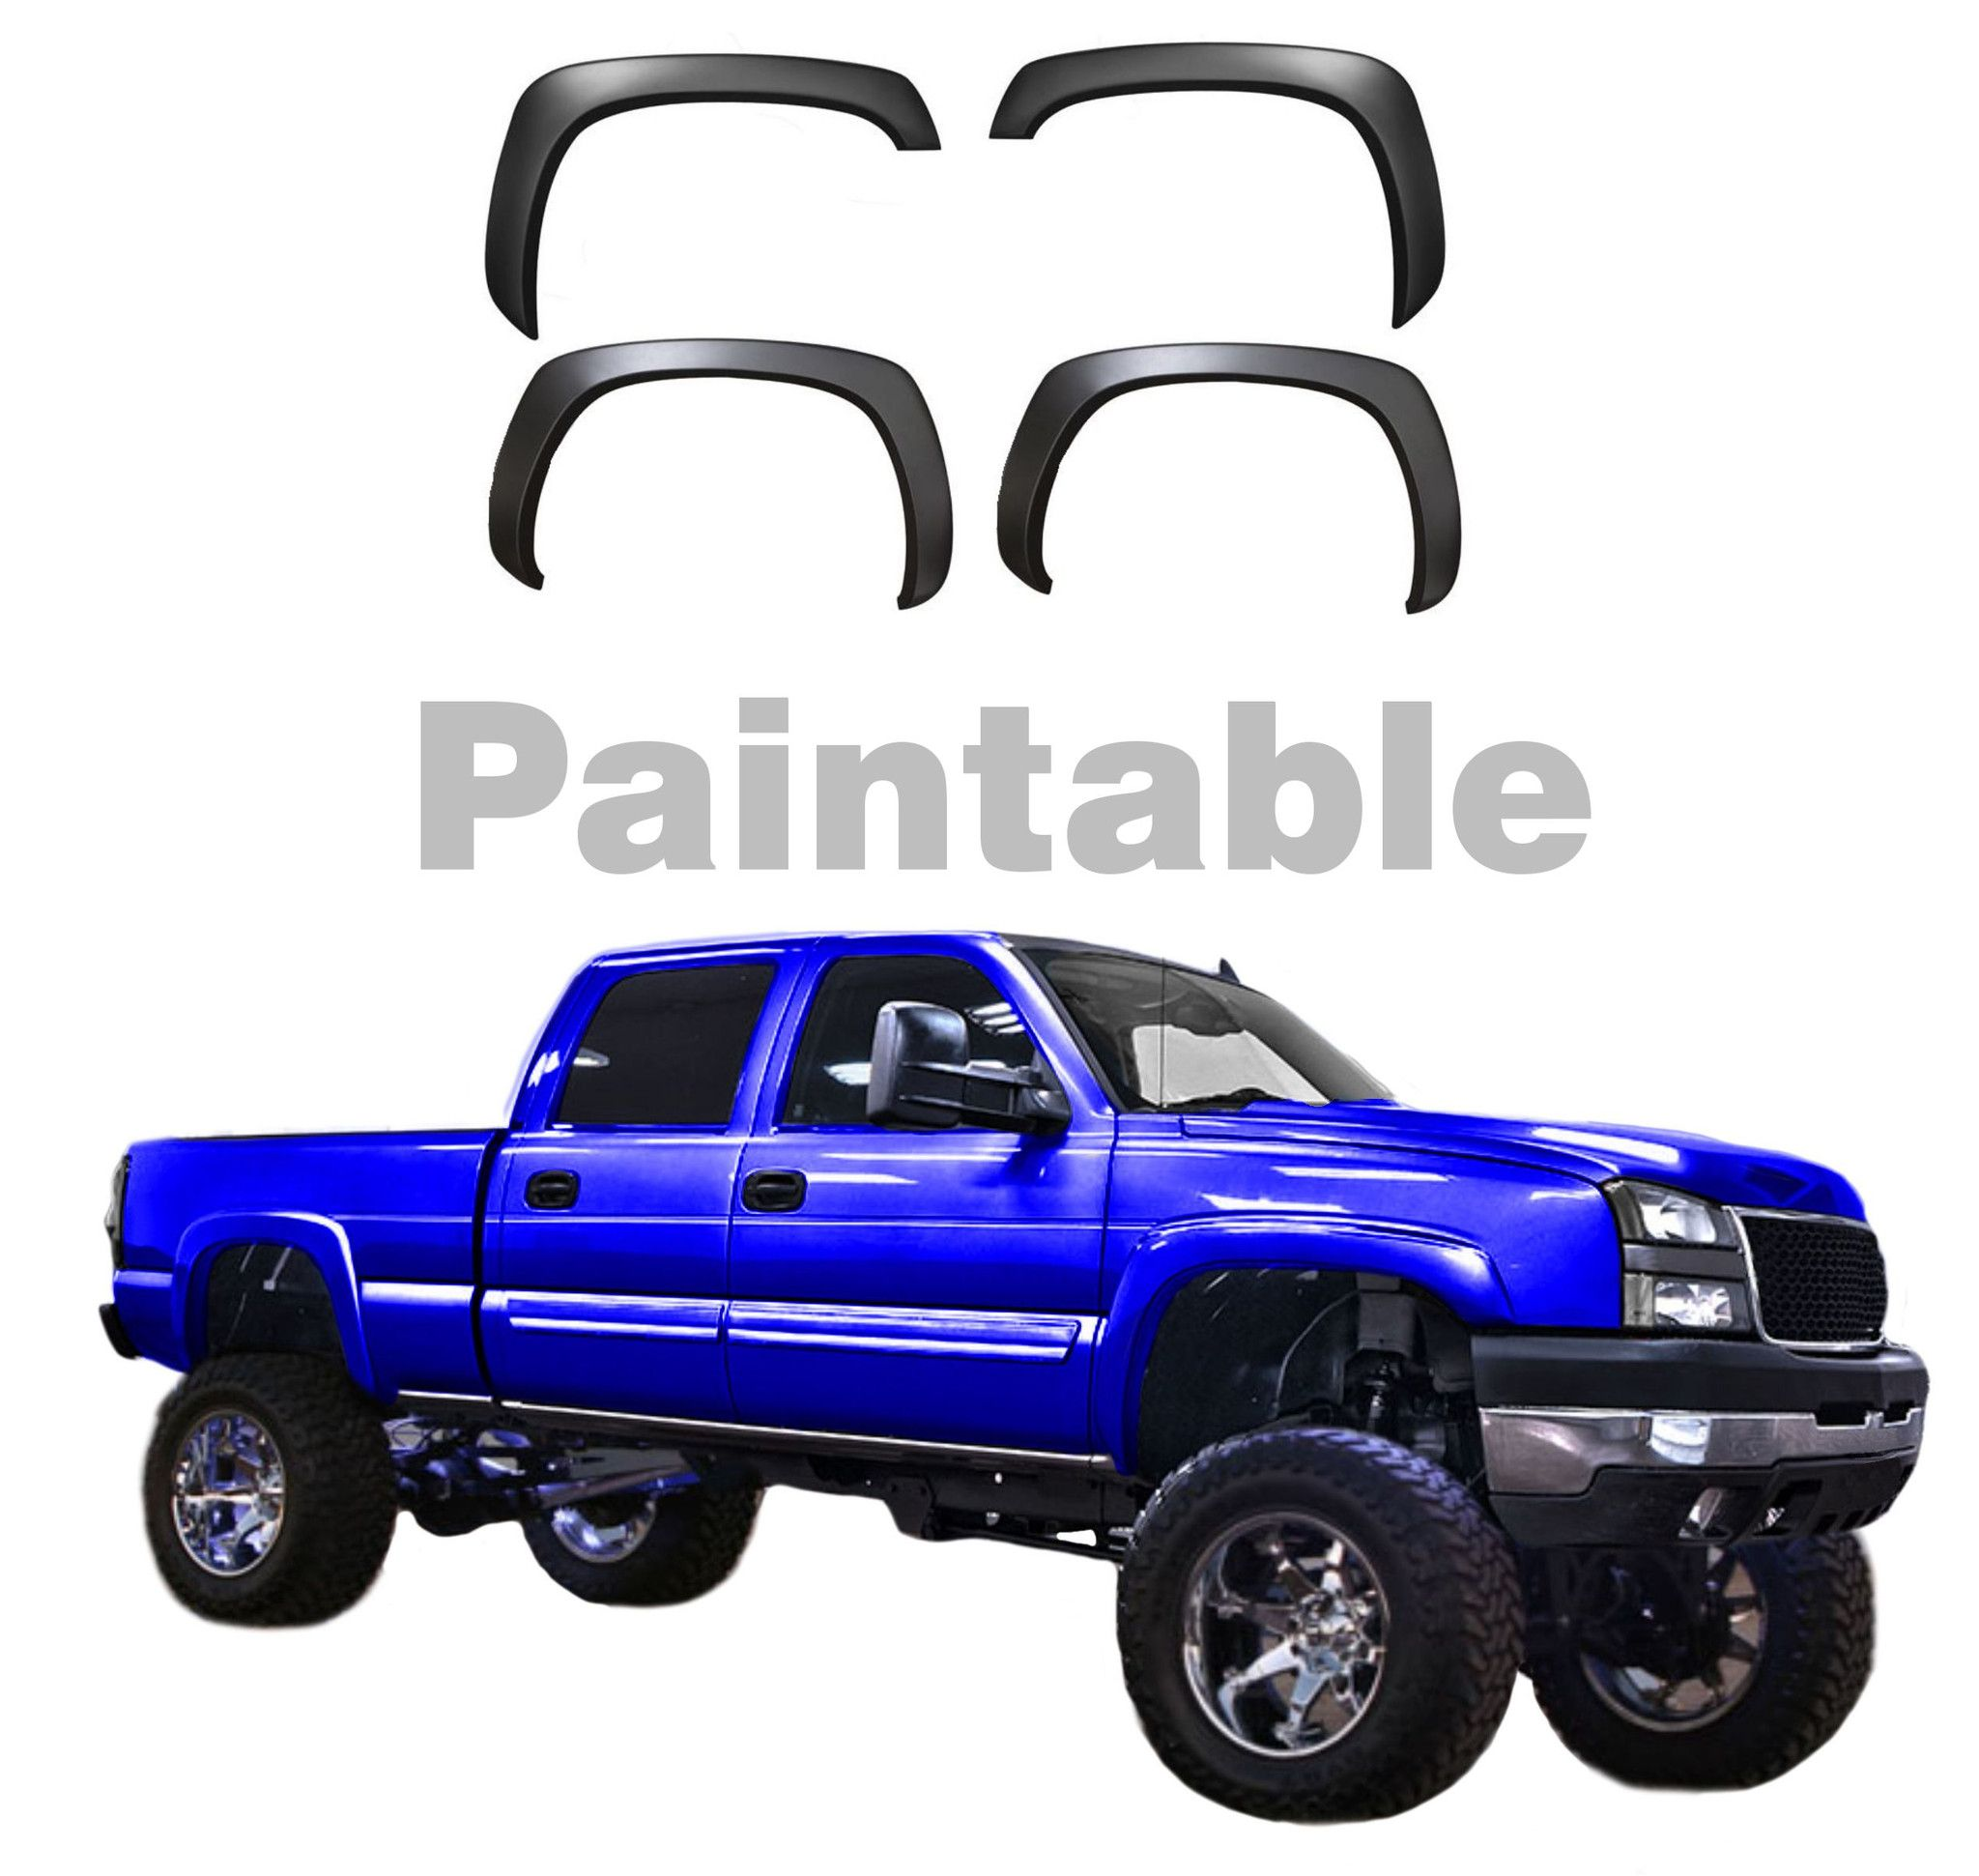 Chevy silverado brand new high quality fender flares set of 4 fender flares fits 1999 2006